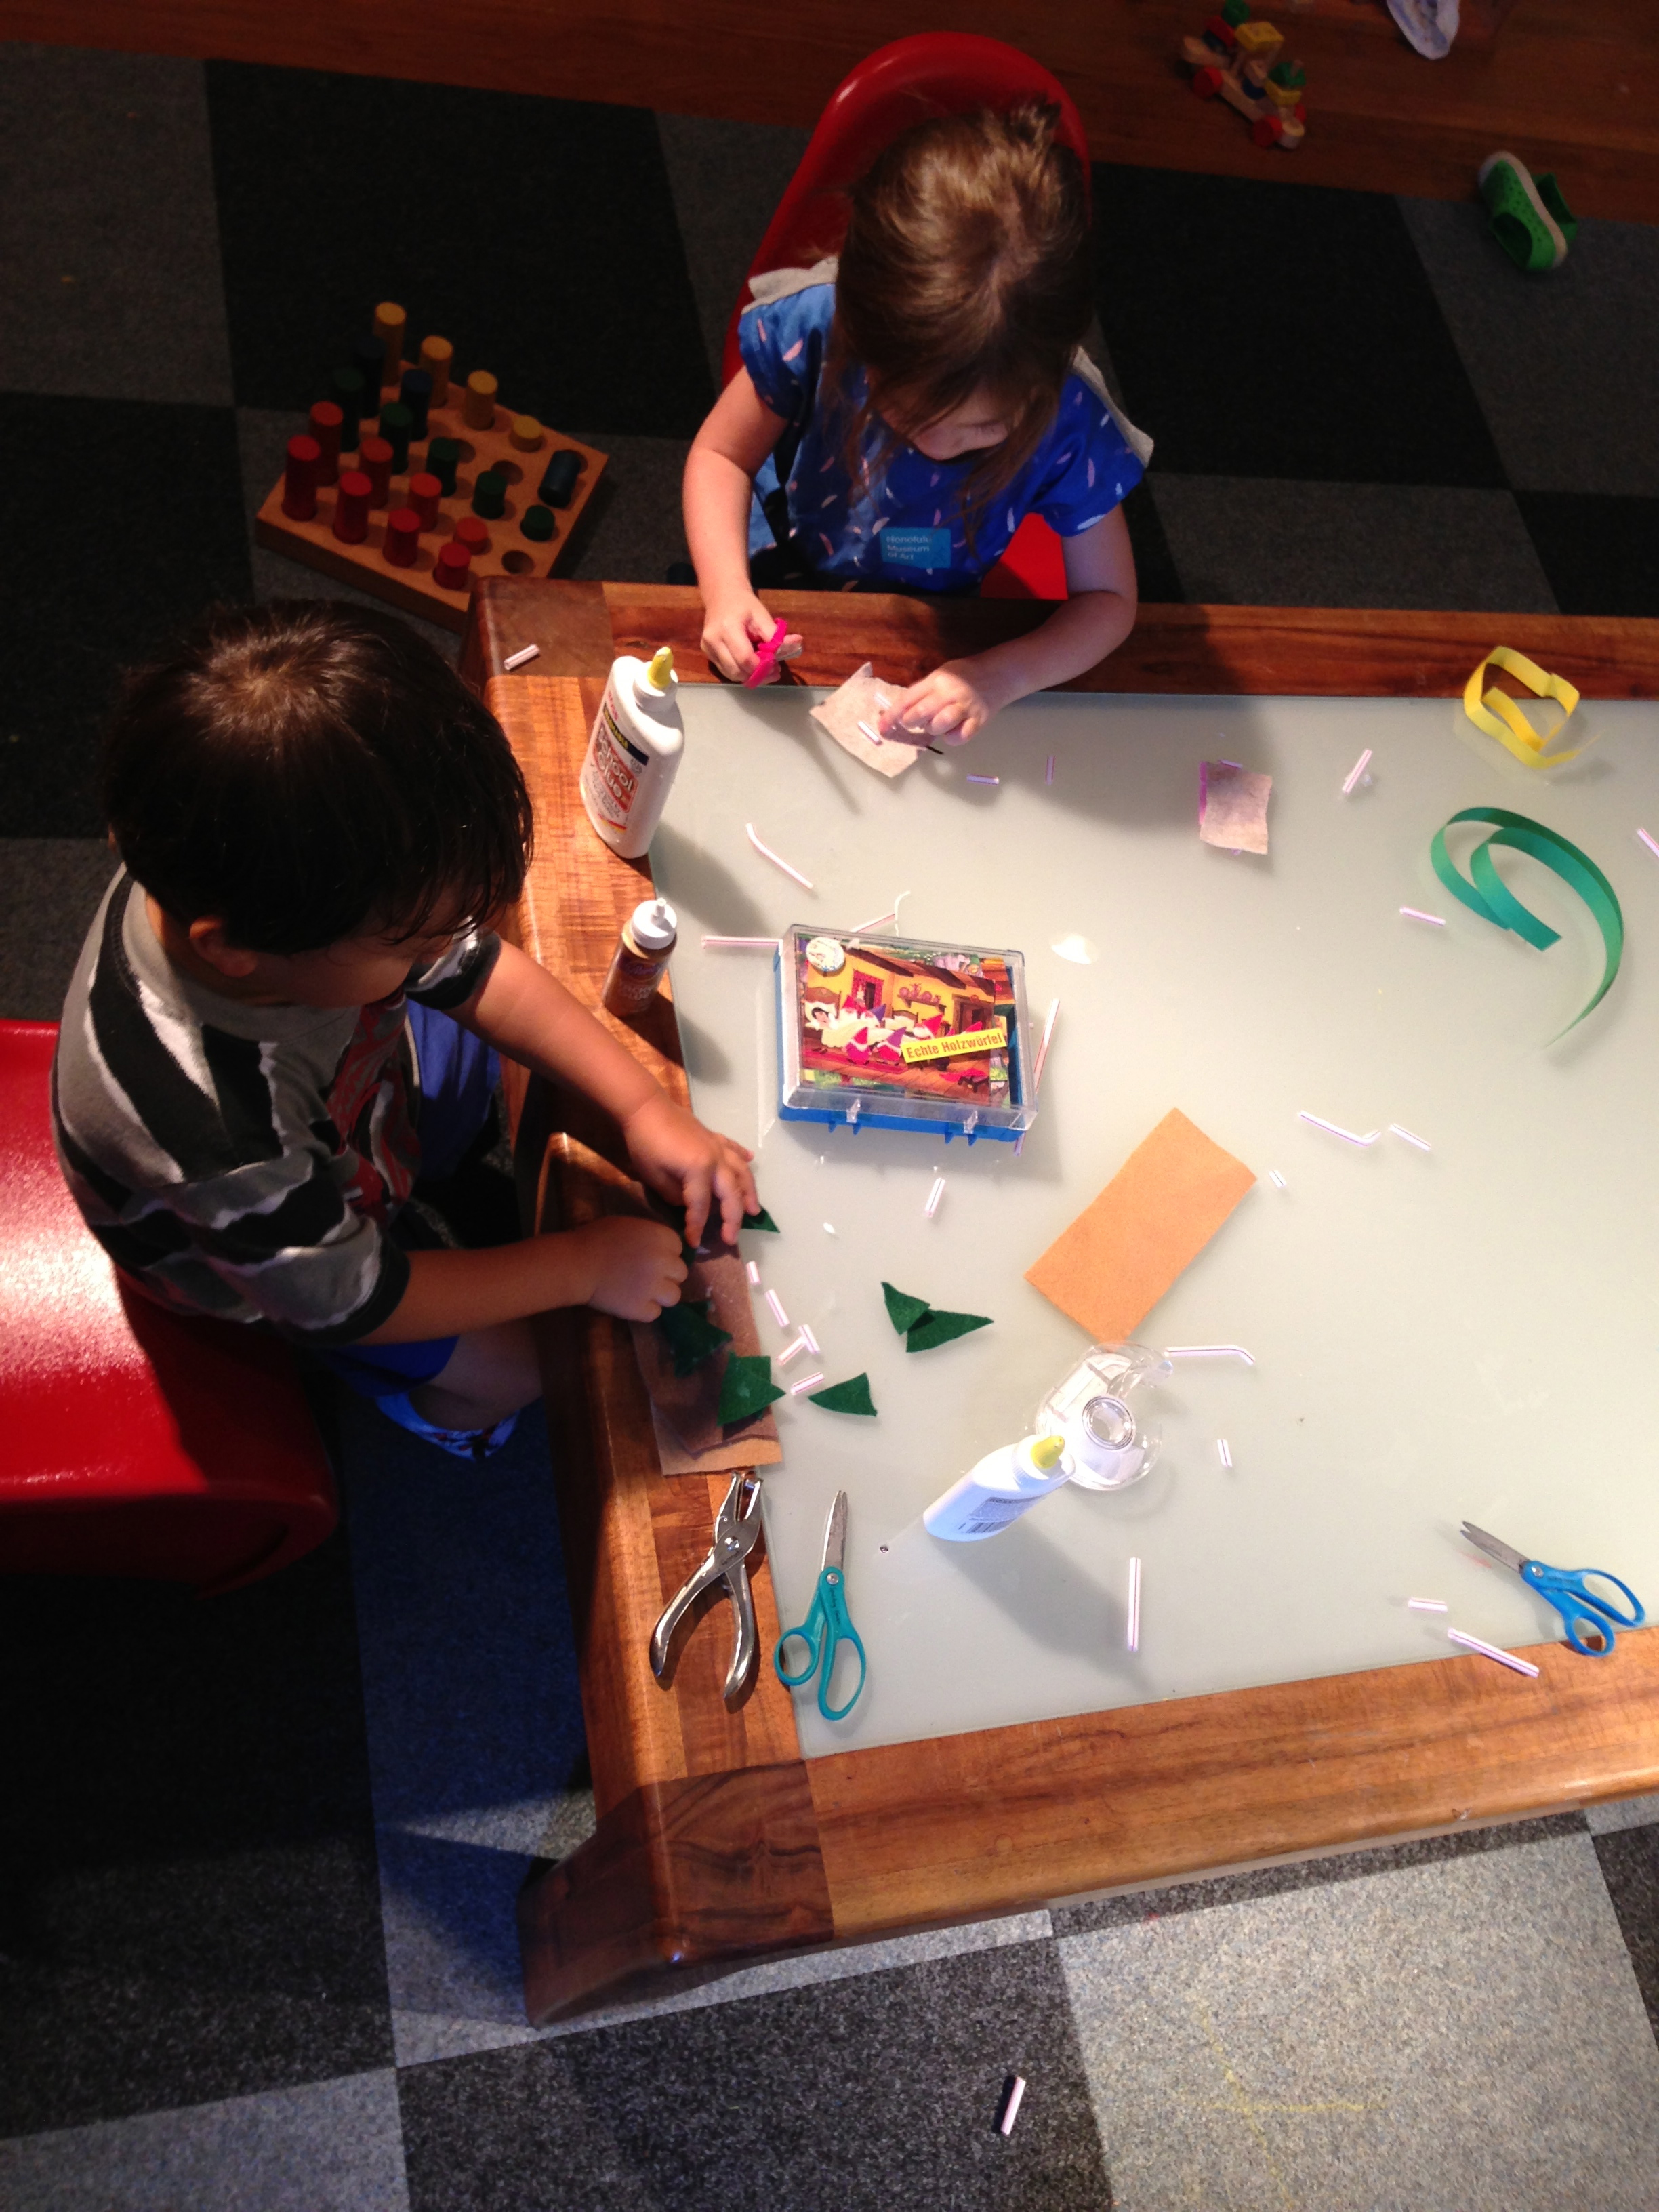 Making monsters and sandwiches with felt, straws and glue.